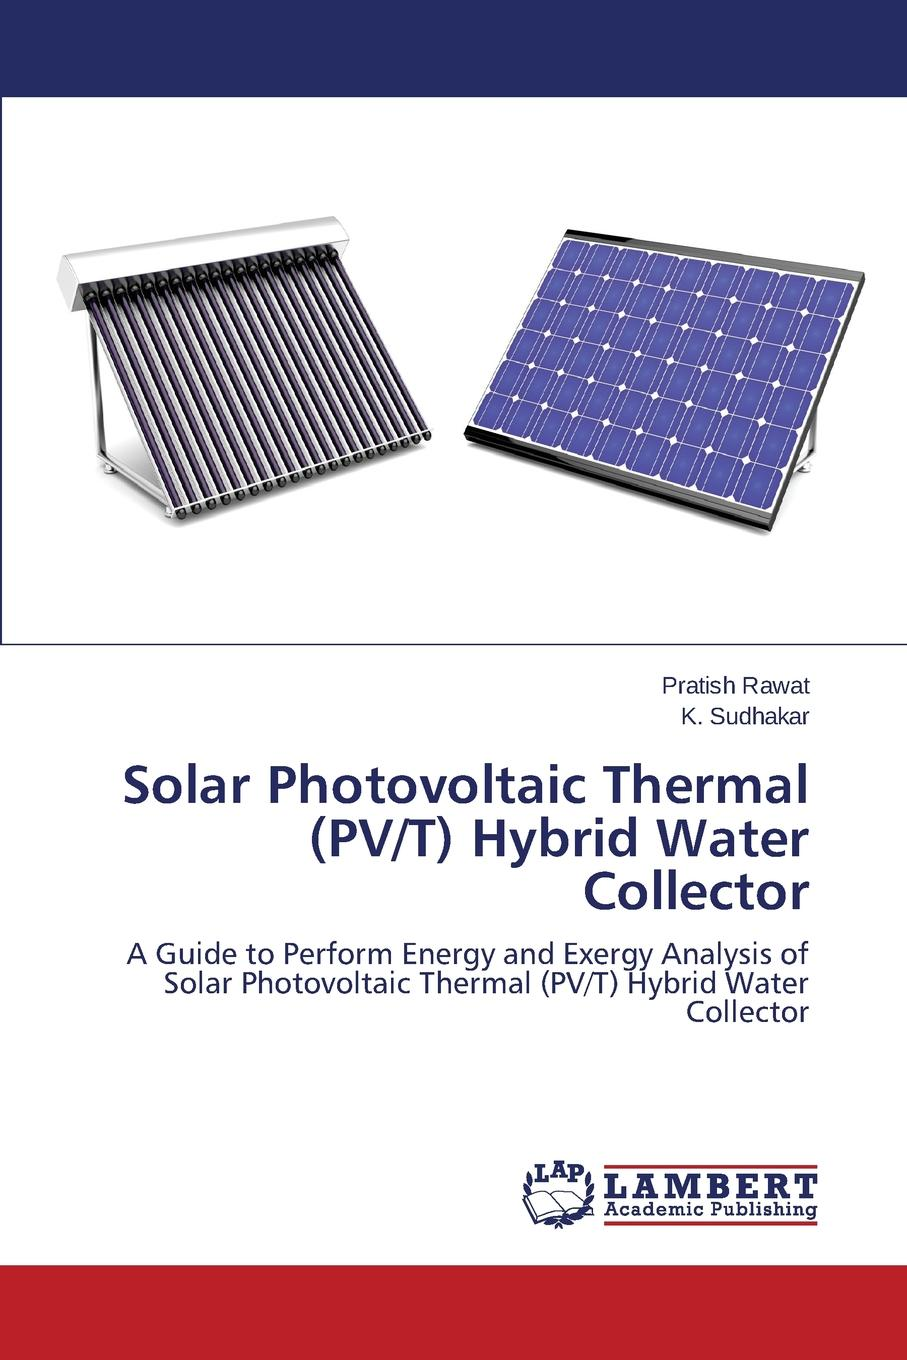 Rawat Pratish, Sudhakar K. Solar Photovoltaic Thermal (PV/T) Hybrid Water Collector universal adjustable solar panel wall and ground mounting bracket